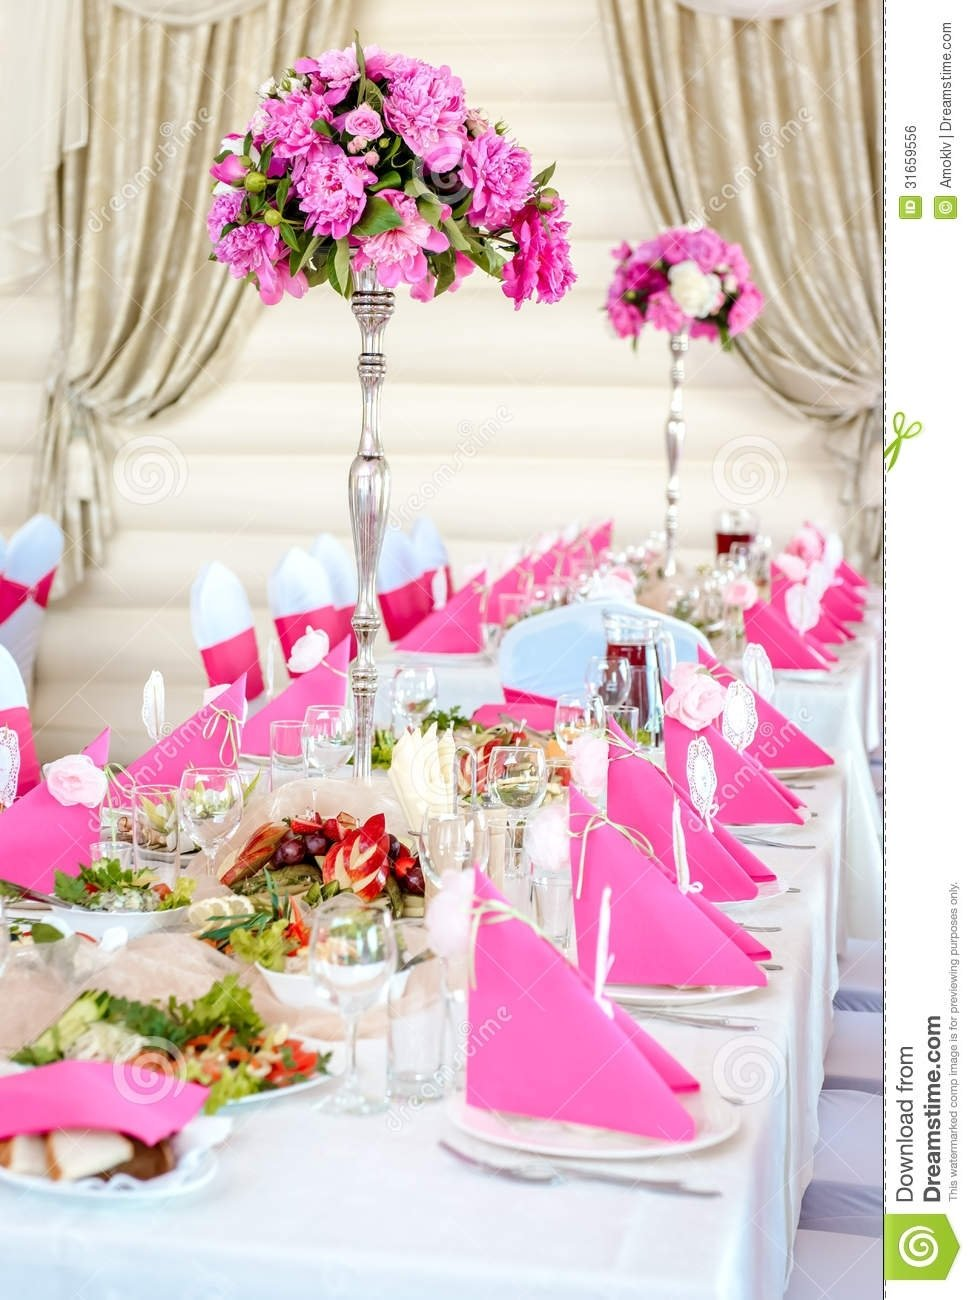 10 Stunning Pink And White Wedding Ideas related image wedding white silver hot pink pinterest white 2021